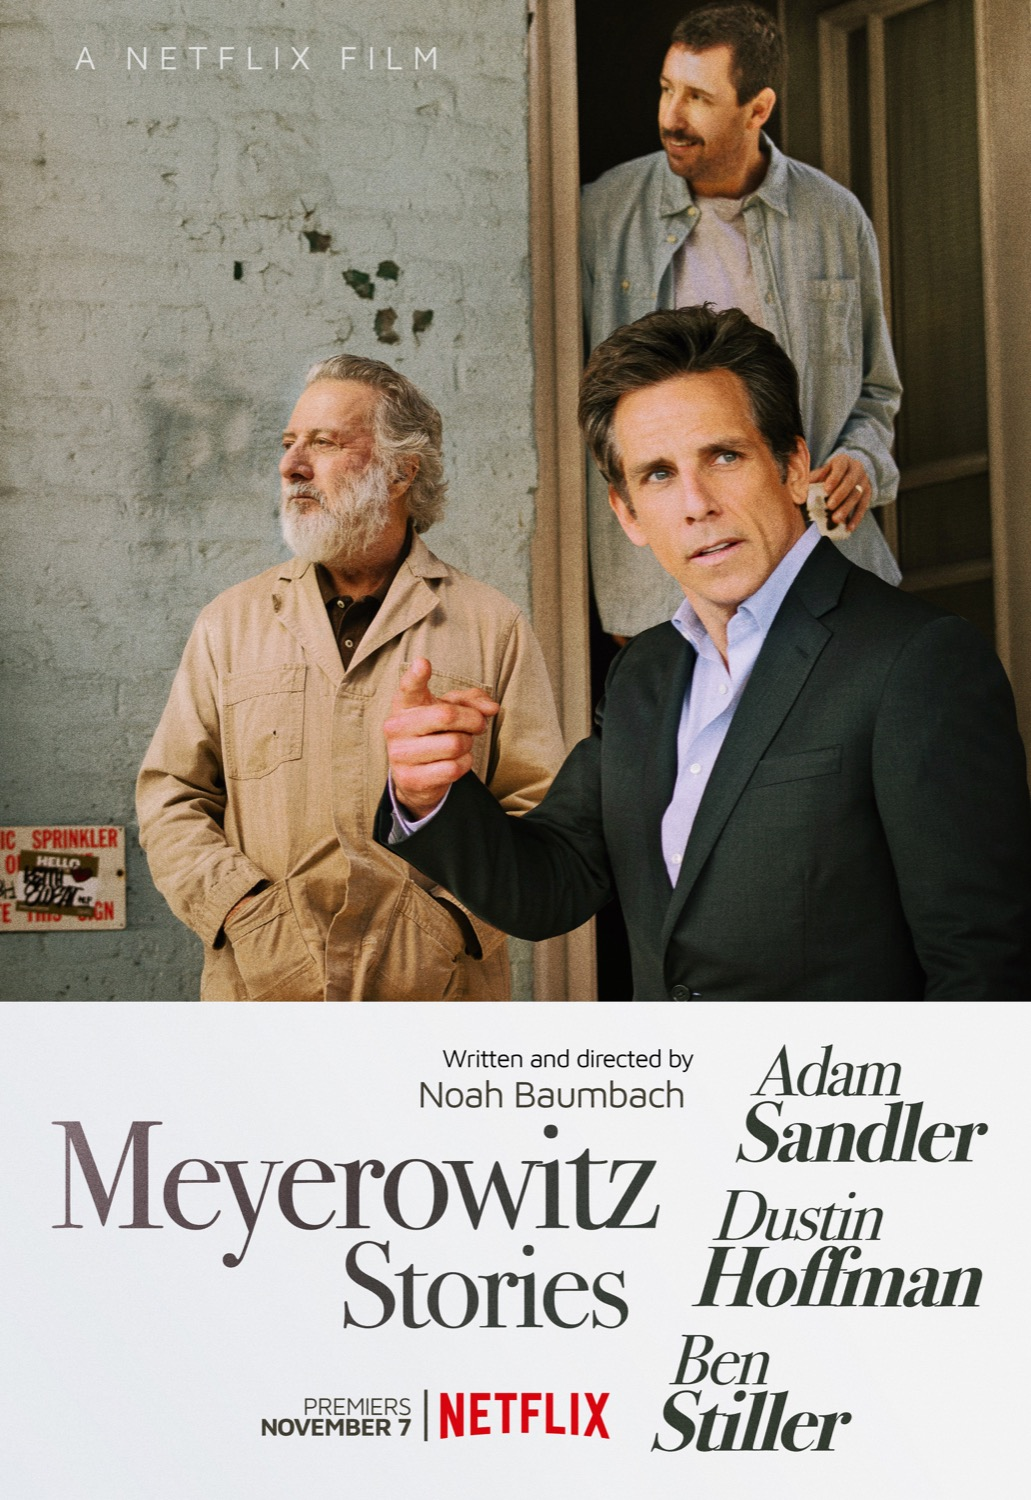 Meyerowitz Stories